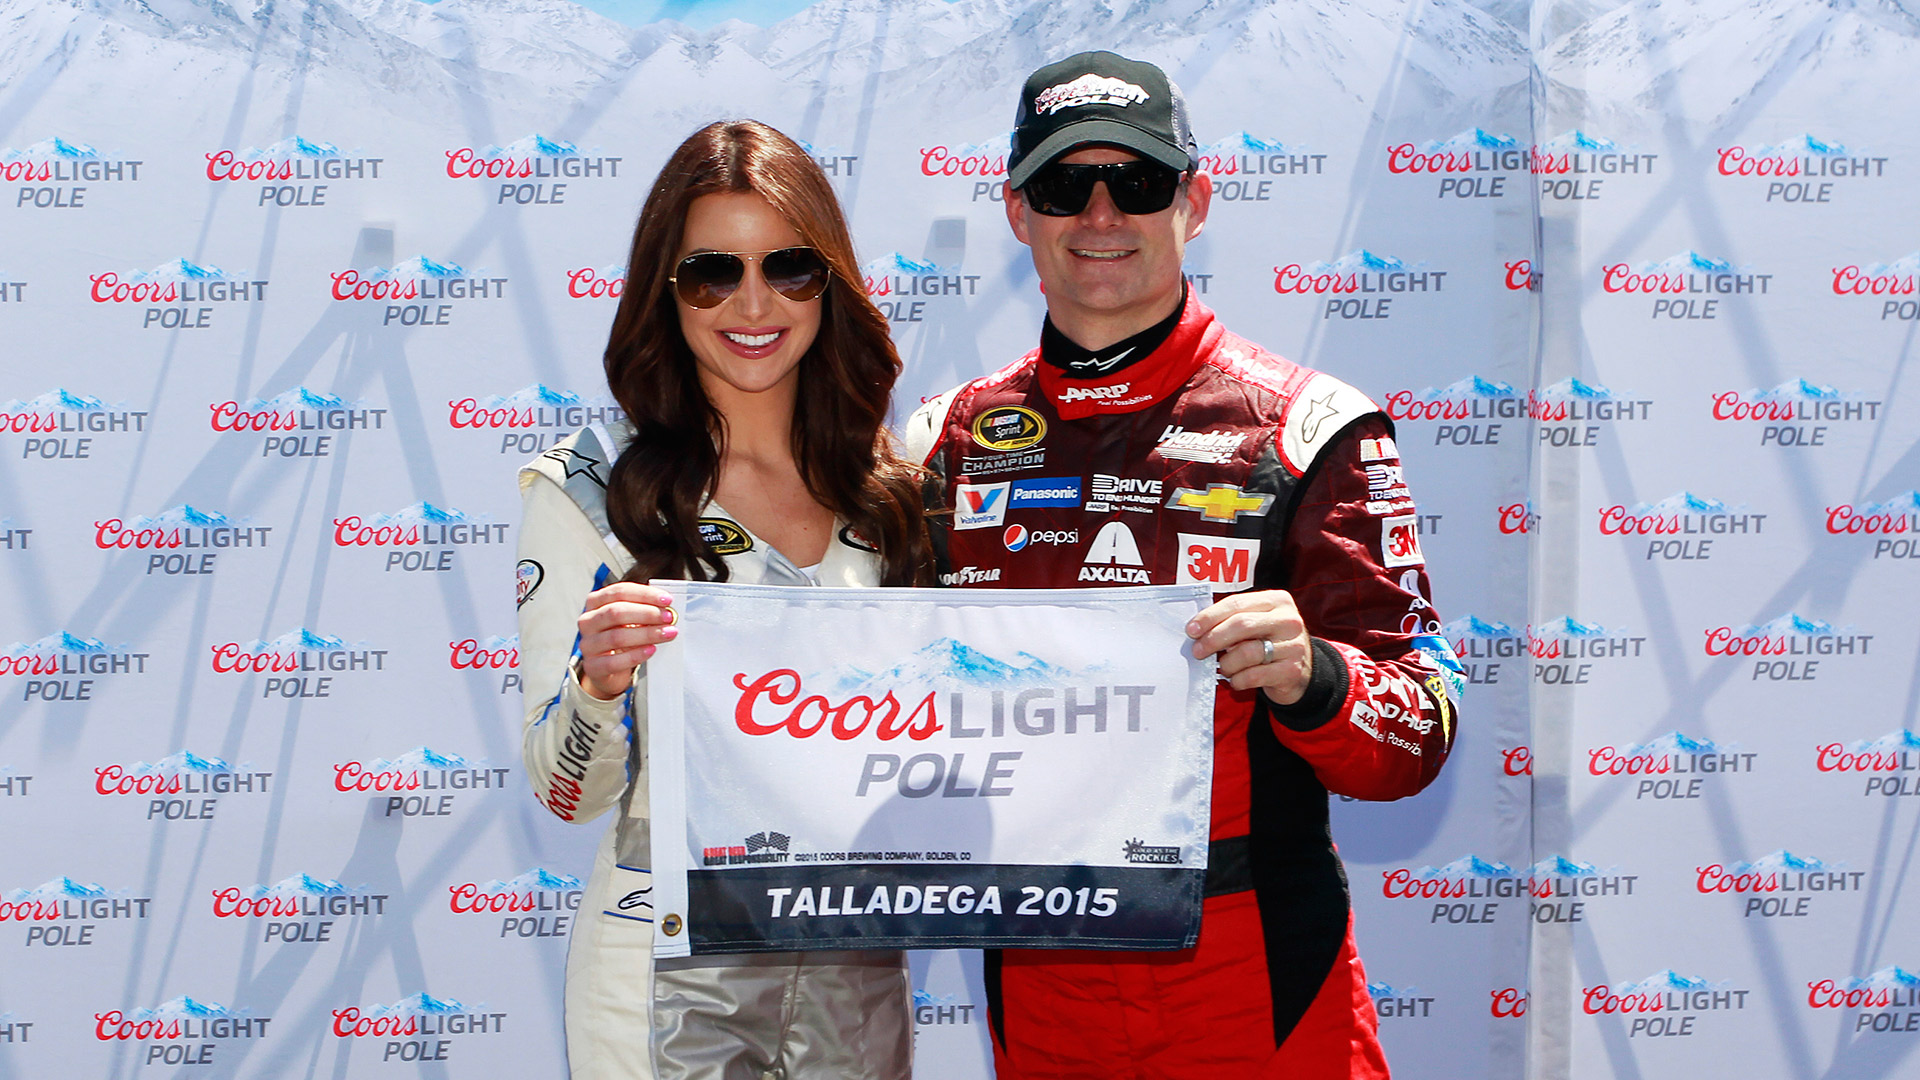 Nascar At Michigan Qualifying Time Tv Channel Online Streaming Sporting News People who liked amanda mertz's feet, also liked https www sportingnews com us nascar news nascar sprint cup michigan schedule tv channel time online streaming information entry list pure michigan 400 2v3spo5tiz0c1vx34o6b9astb